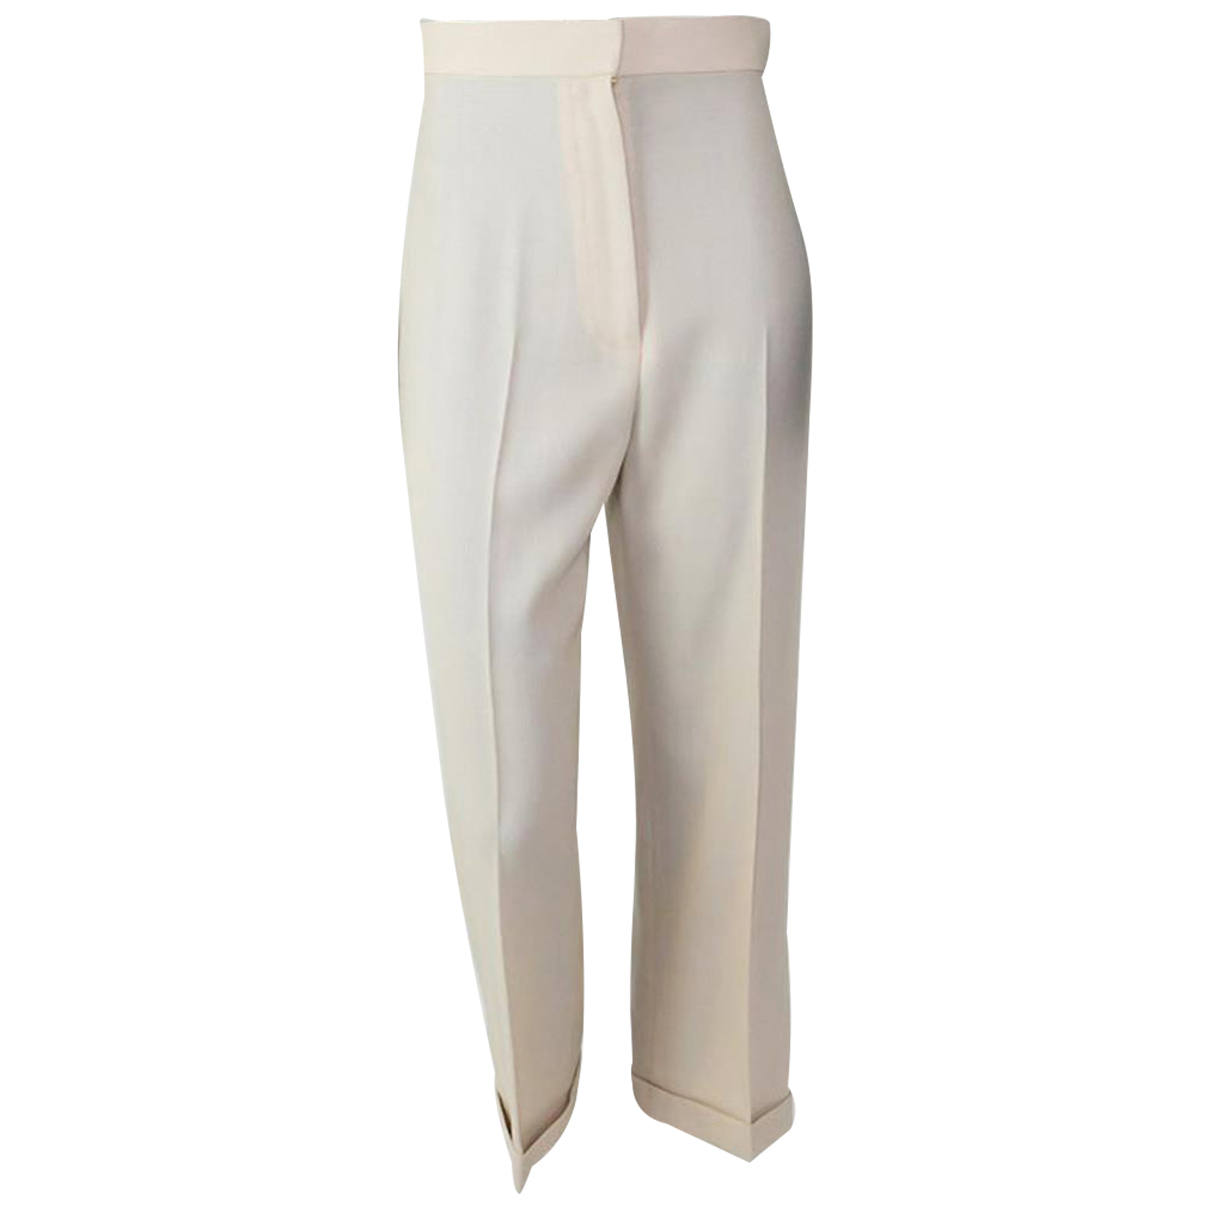 Jacquemus N Beige Trousers for Women 36 FR